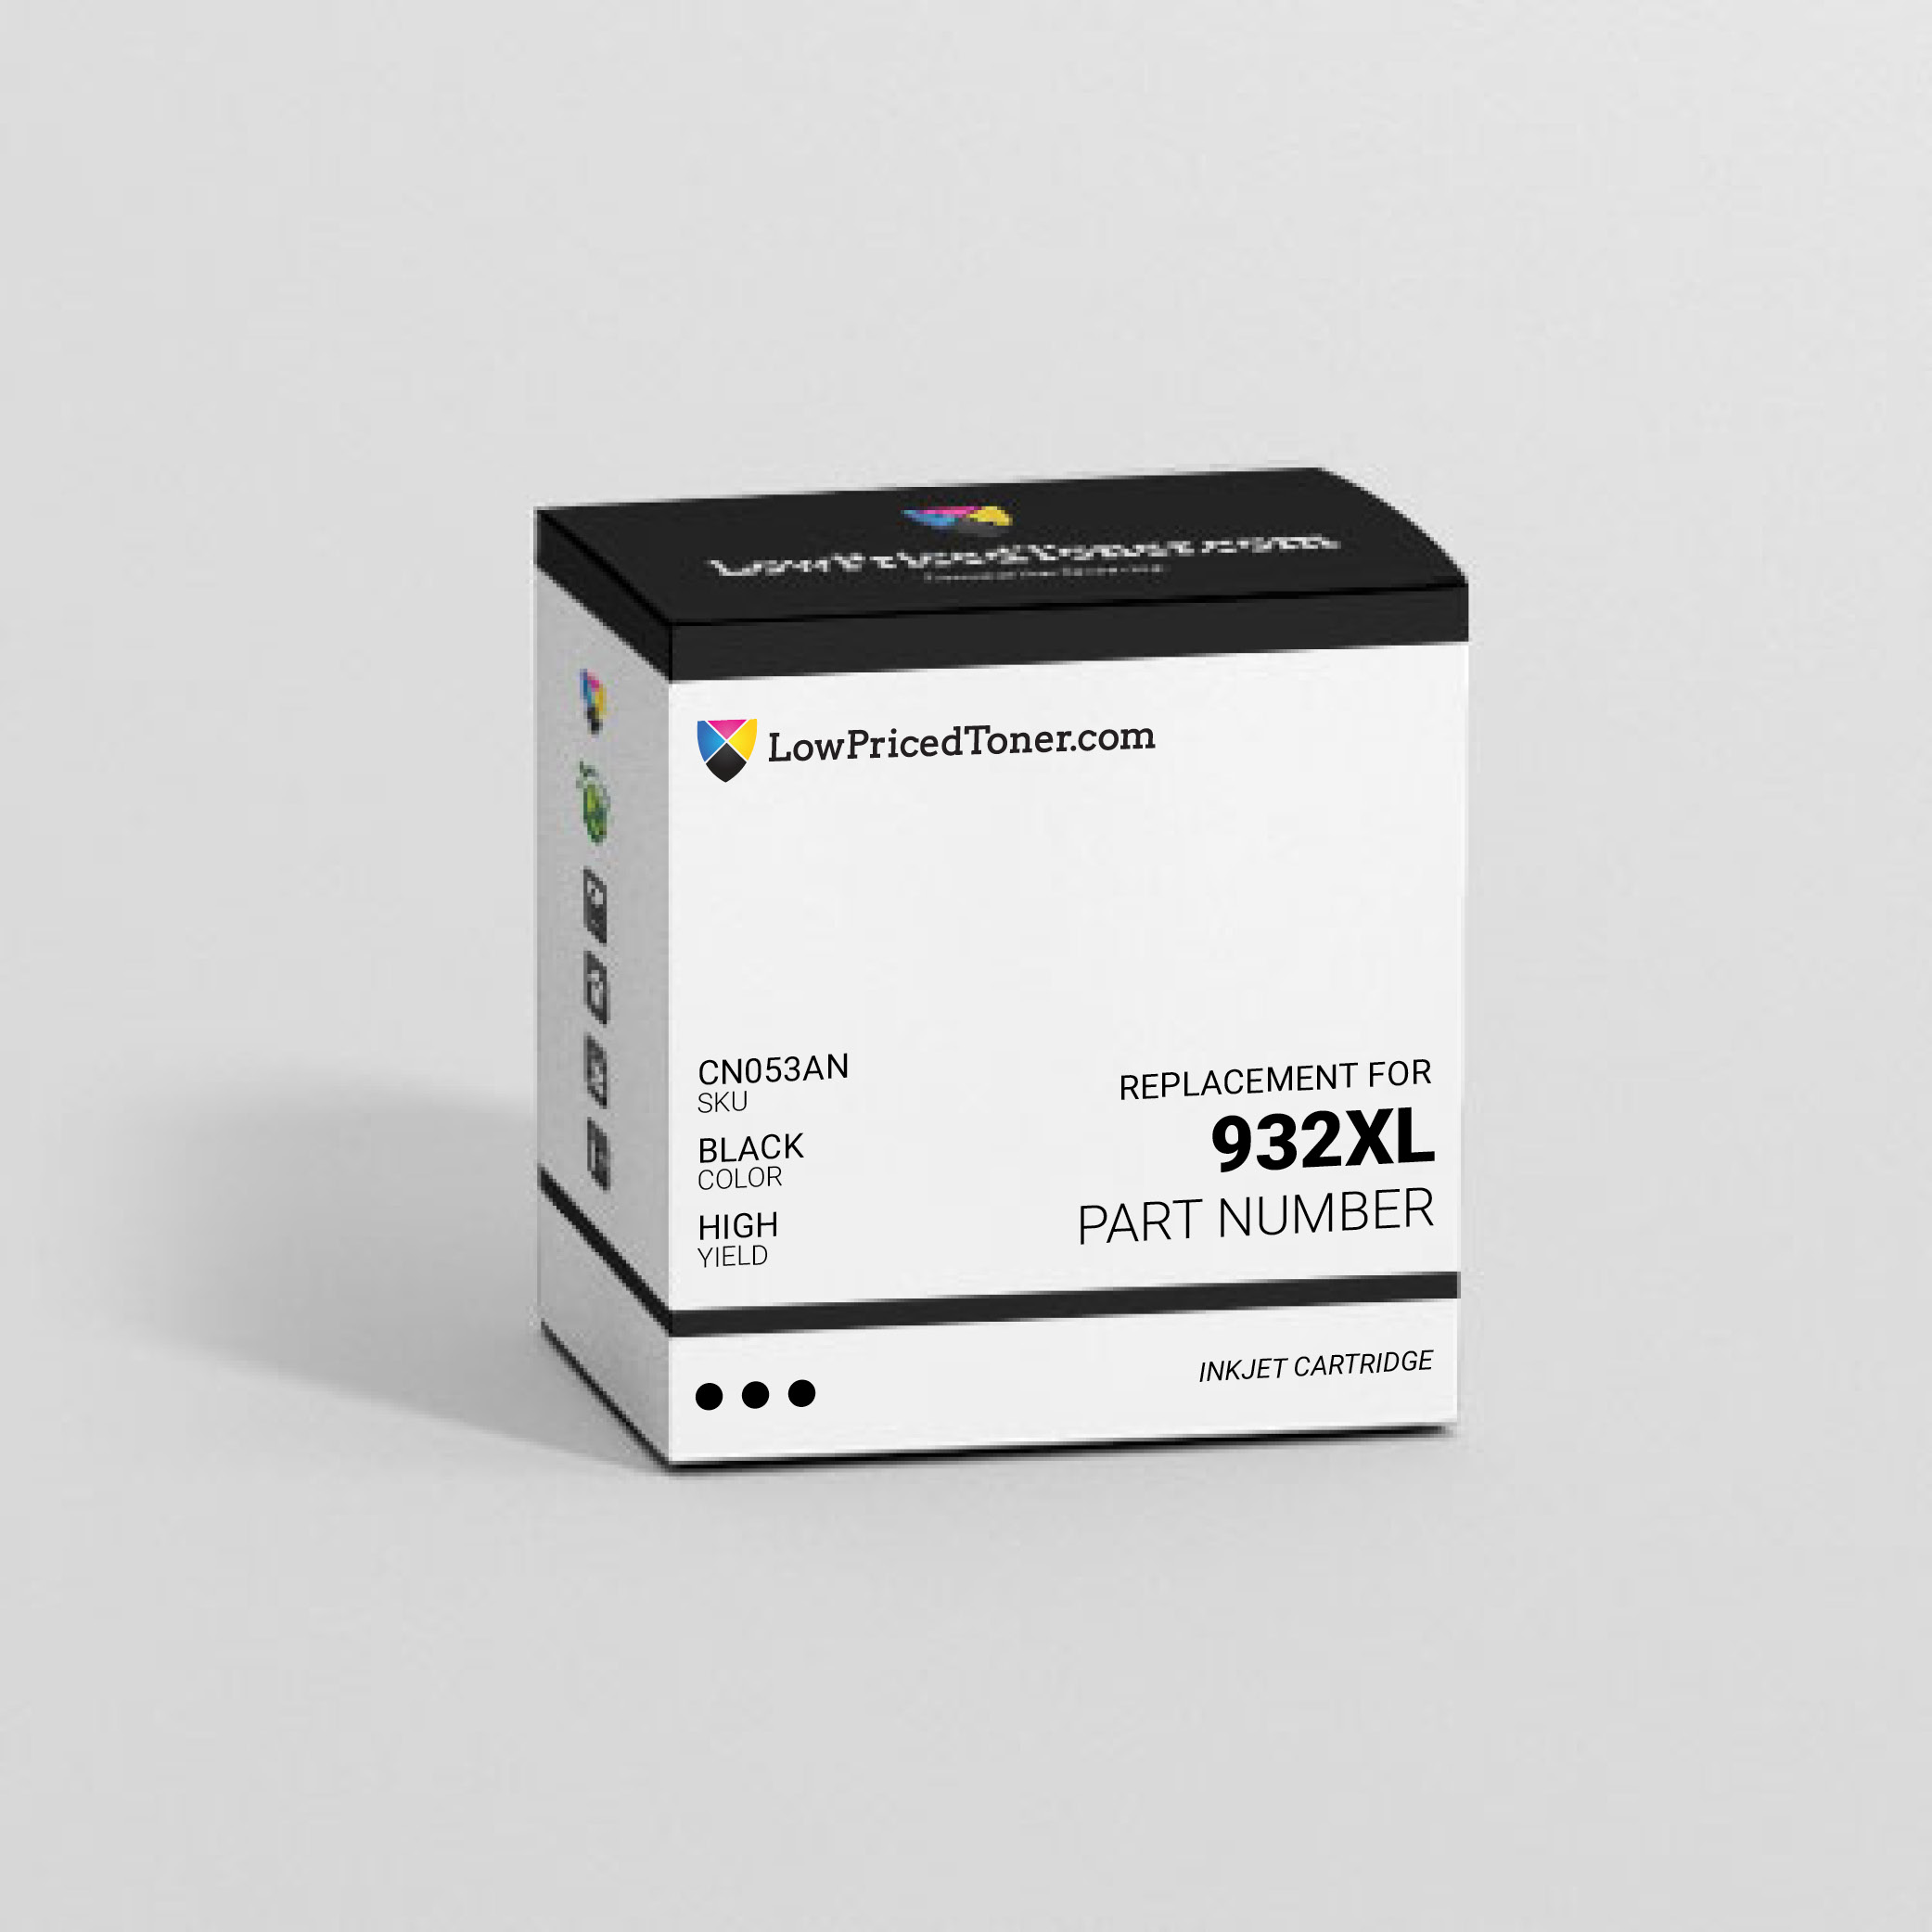 HP CN053AN 932XL Remanufactured Black Ink Cartridge High Yield